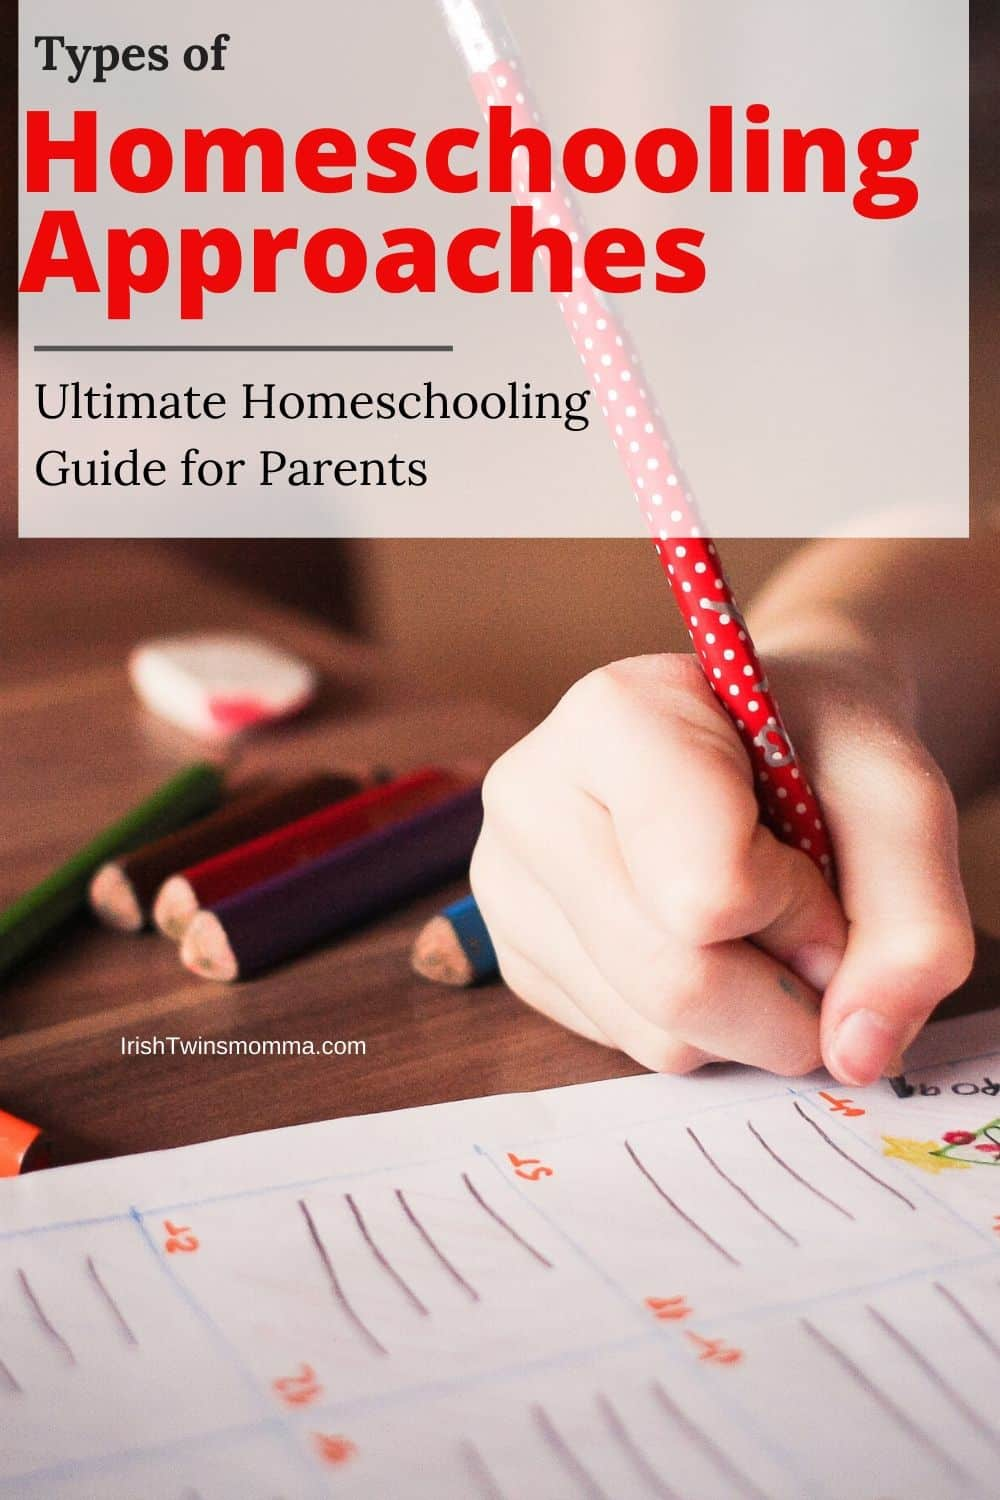 The ultimate guide for homeschooling provides the top 3 approaches to help you succeed in homeschooling. via @irishtwinsmom11